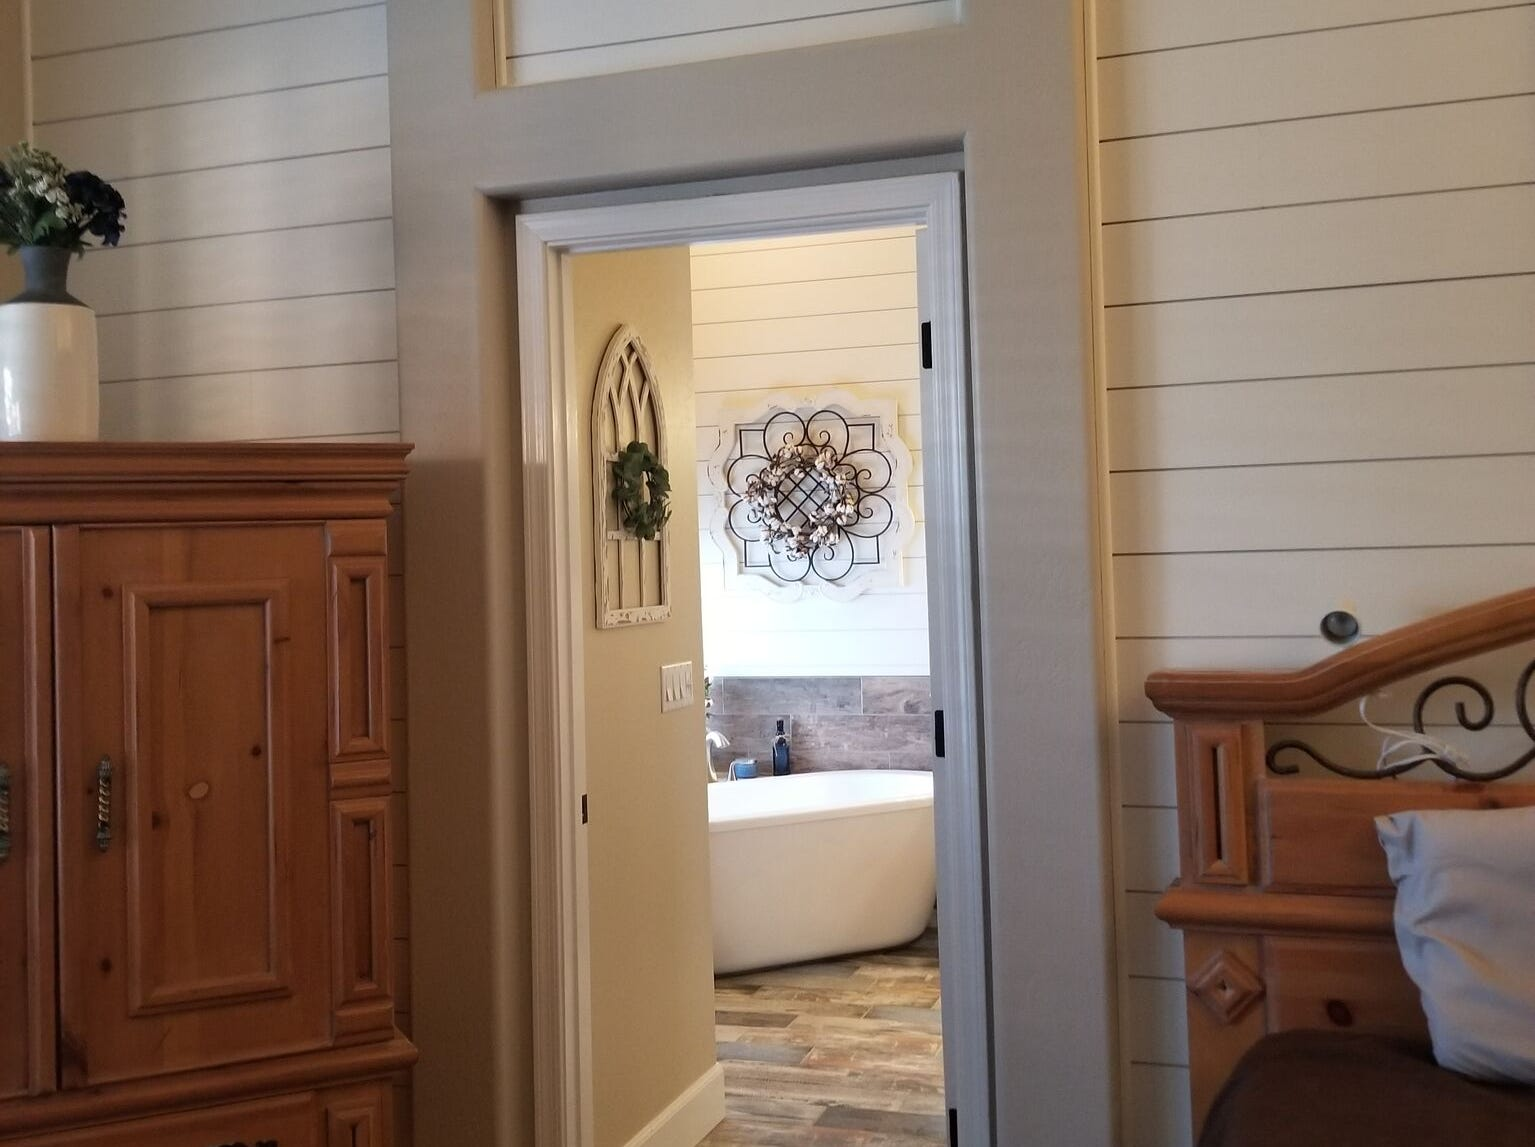 Shiplap was added to a bedroom wall and carries into the master bathroom.